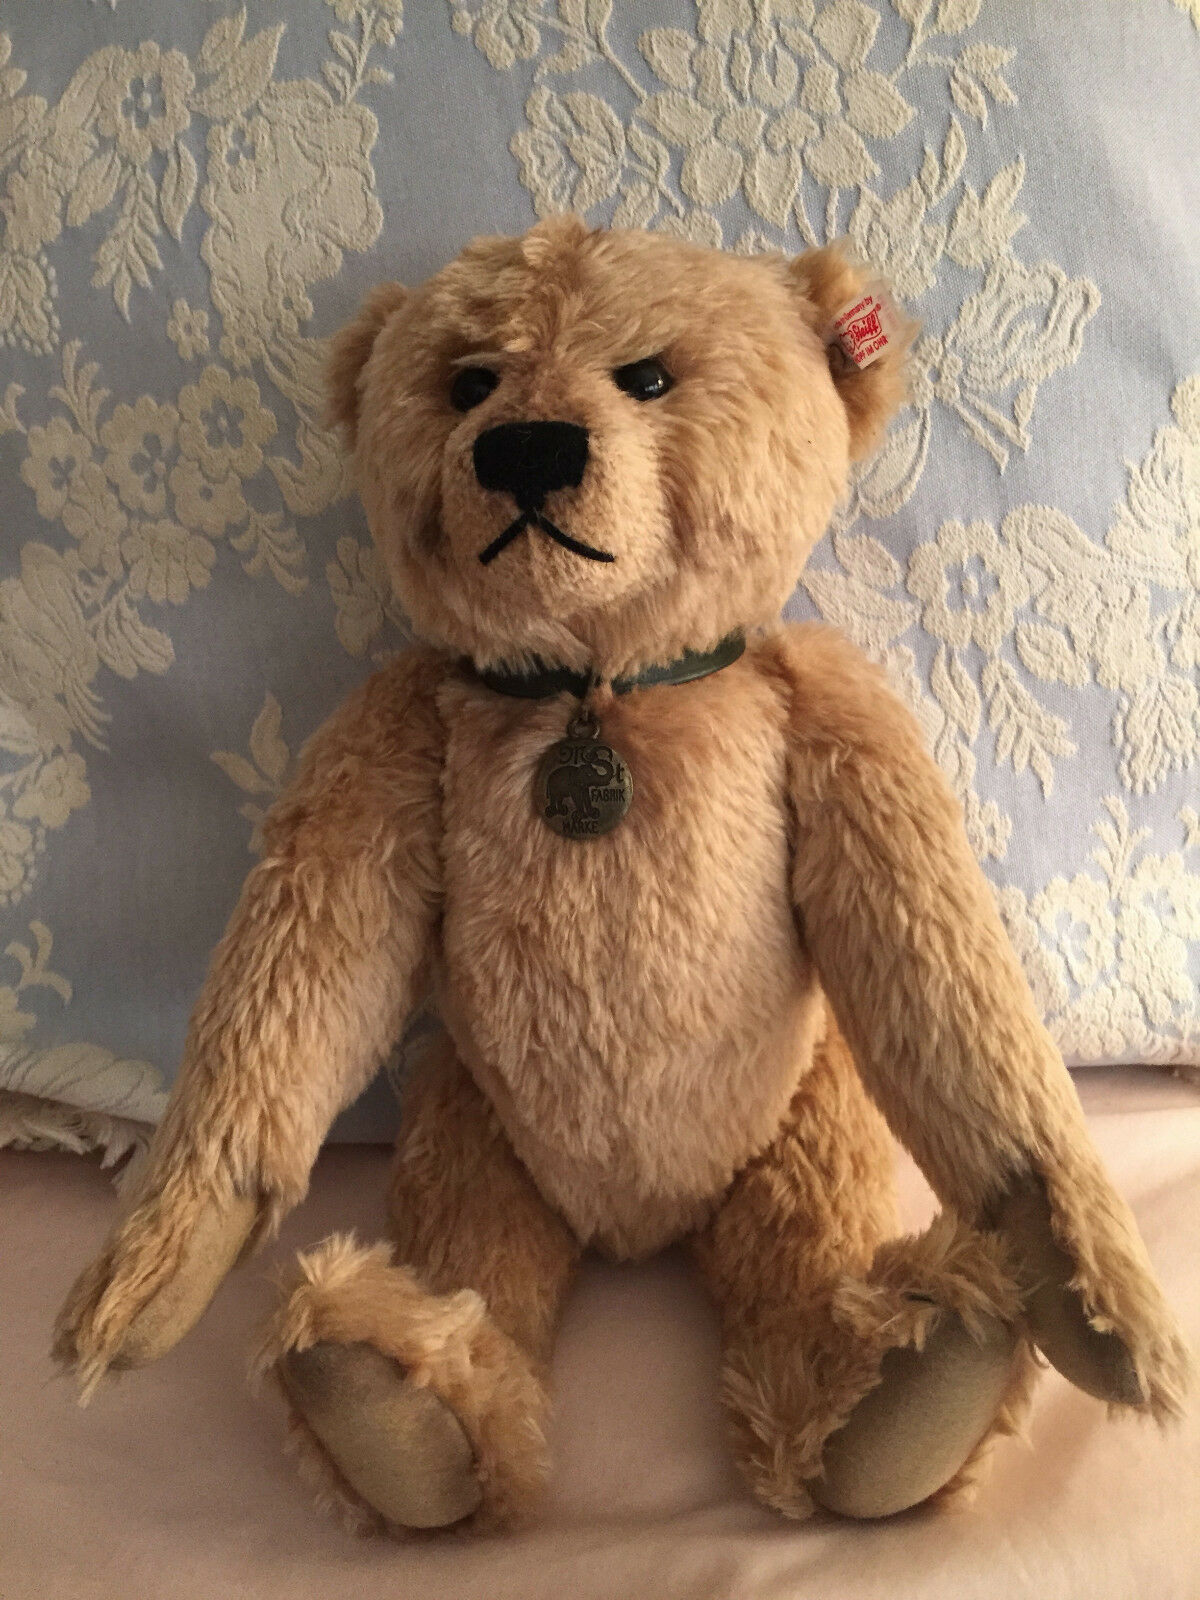 STEIFF TEDDY BEAR GATSBY, THE TRADEMARK, LED OF 1897 JOINTED W/GROWLER 00489